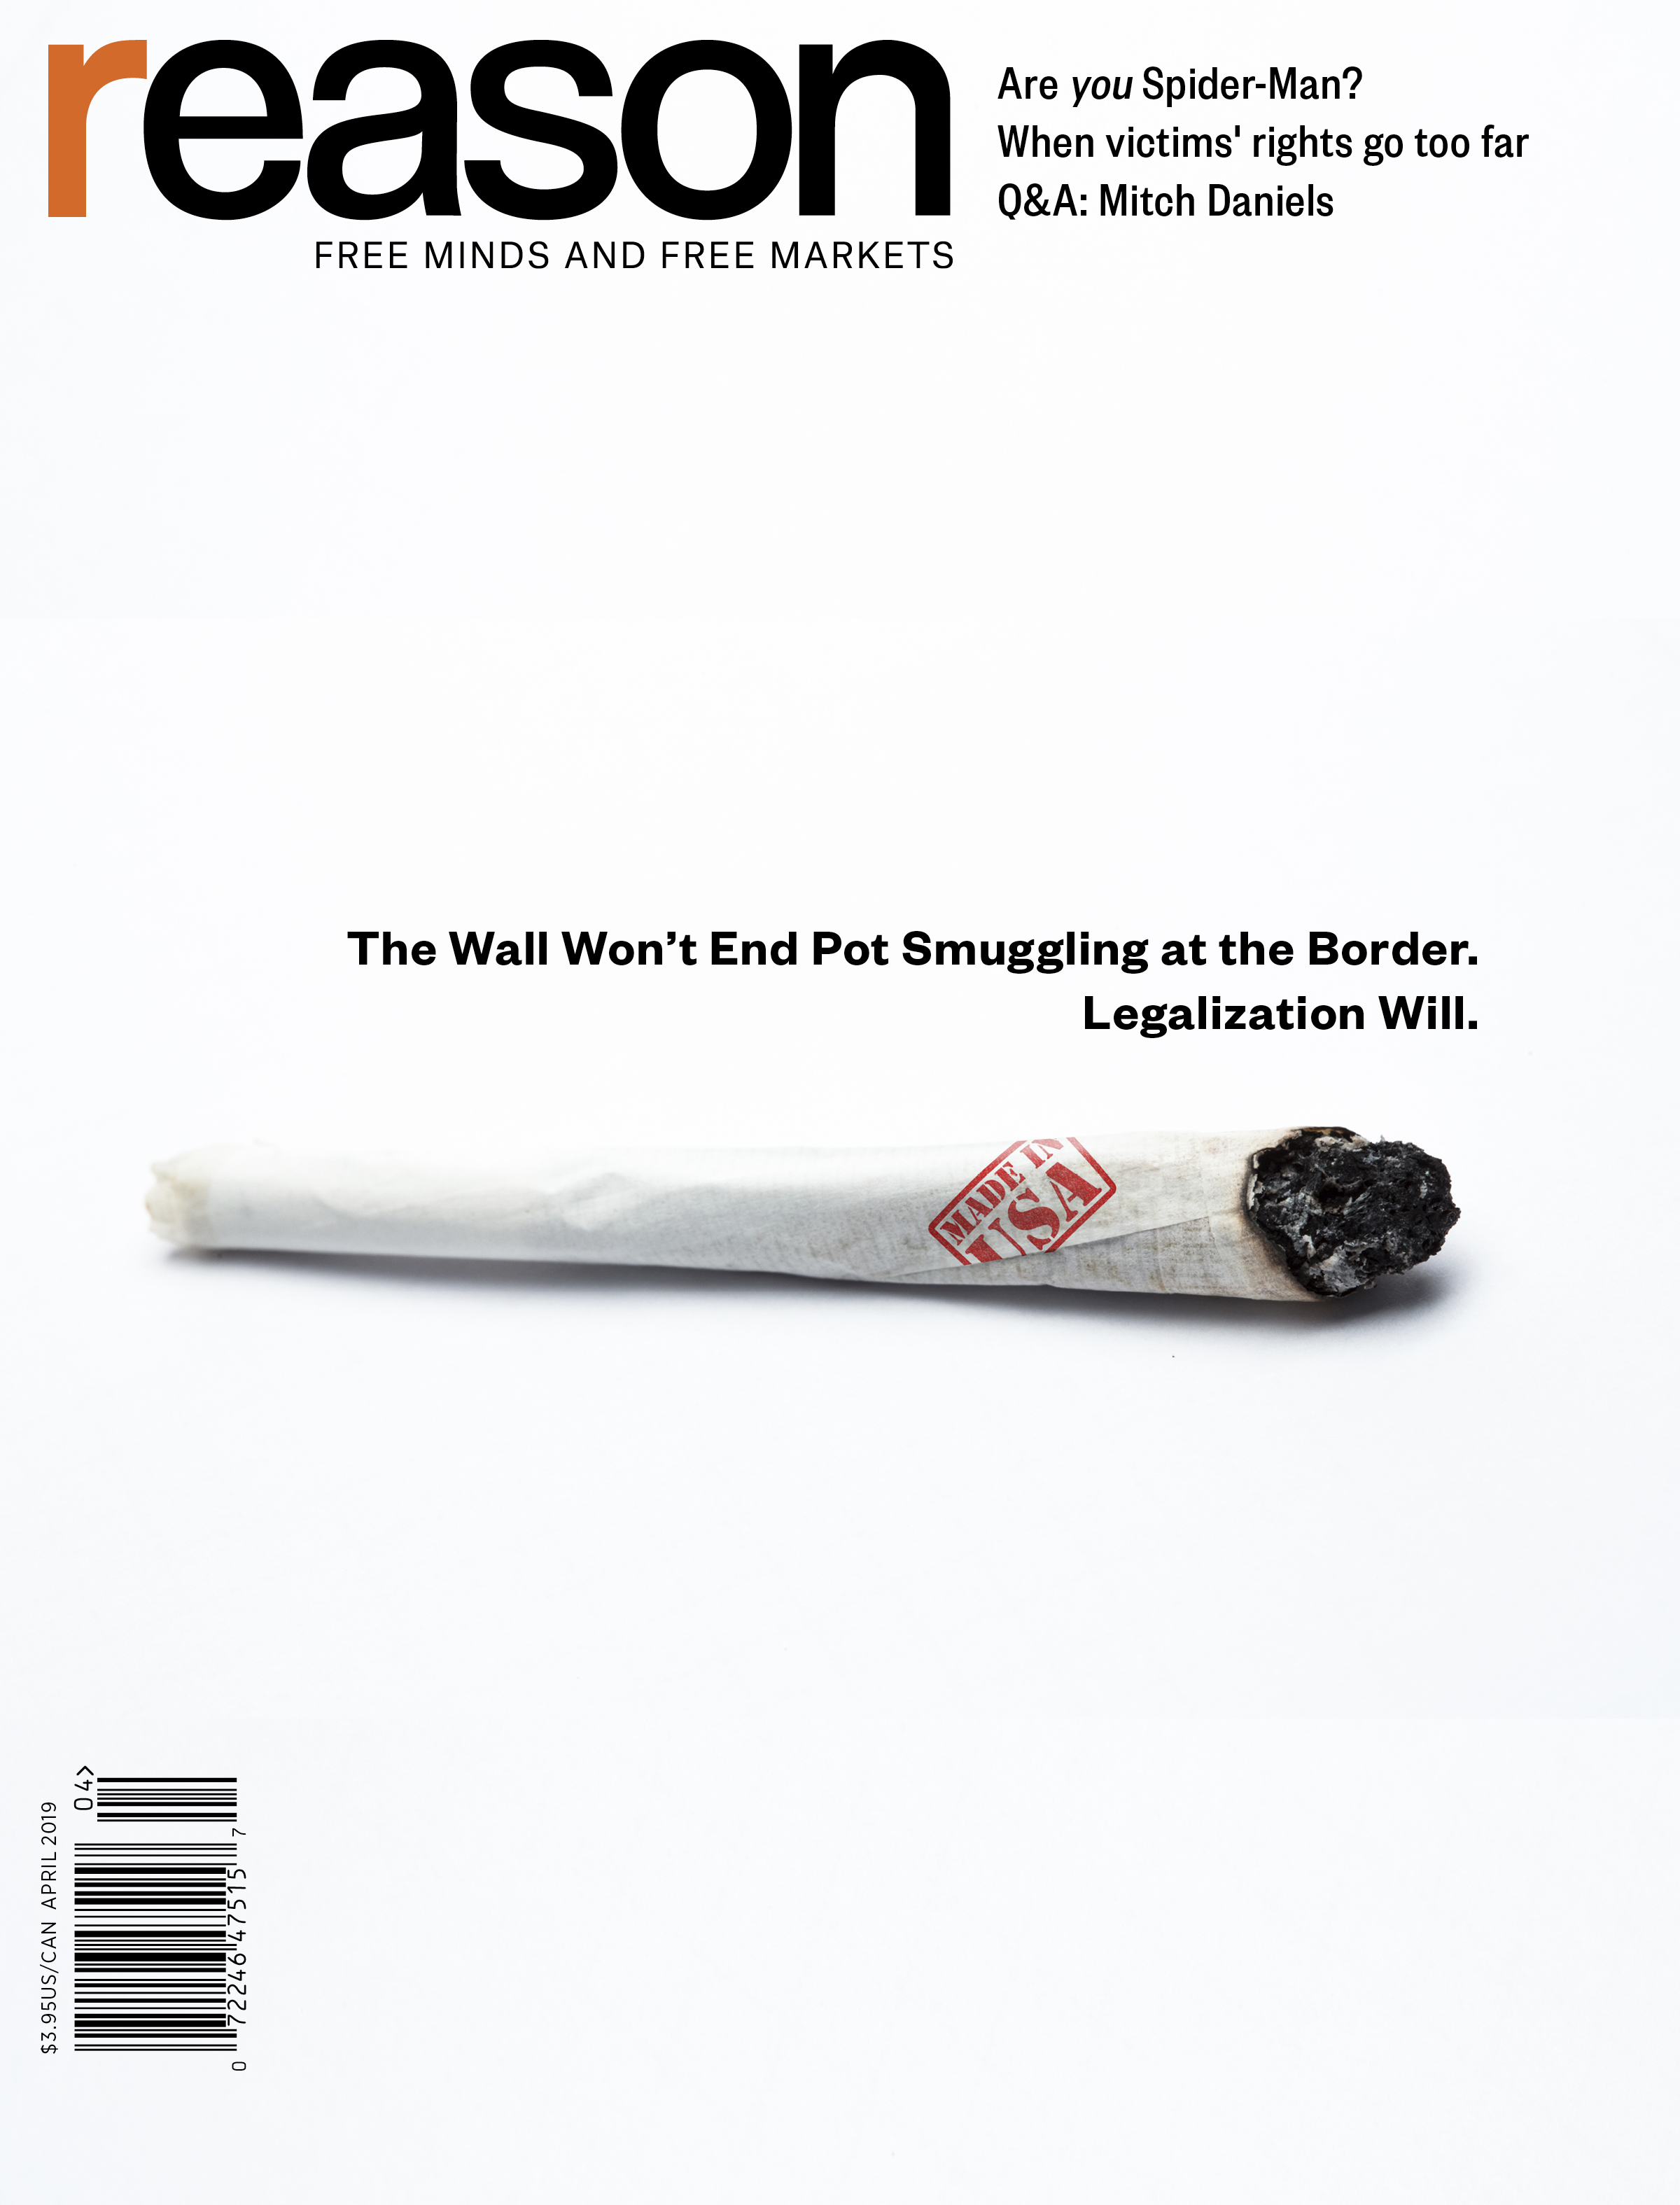 Reason Magazine, April 2019 cover image